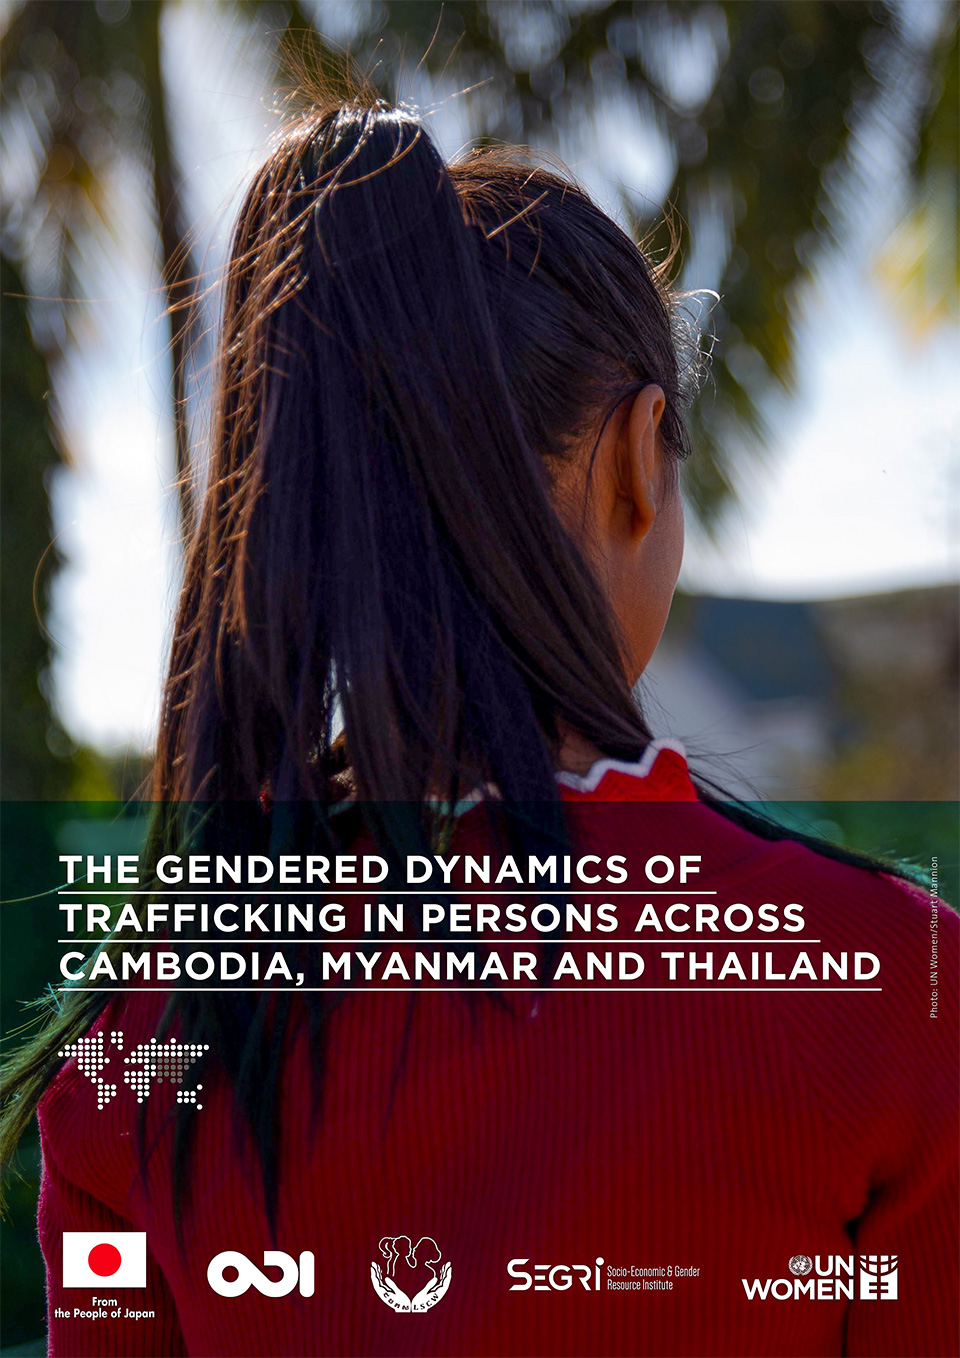 The gendered dynamics of trafficking in persons across Cambodia, Myanmar and Thailand